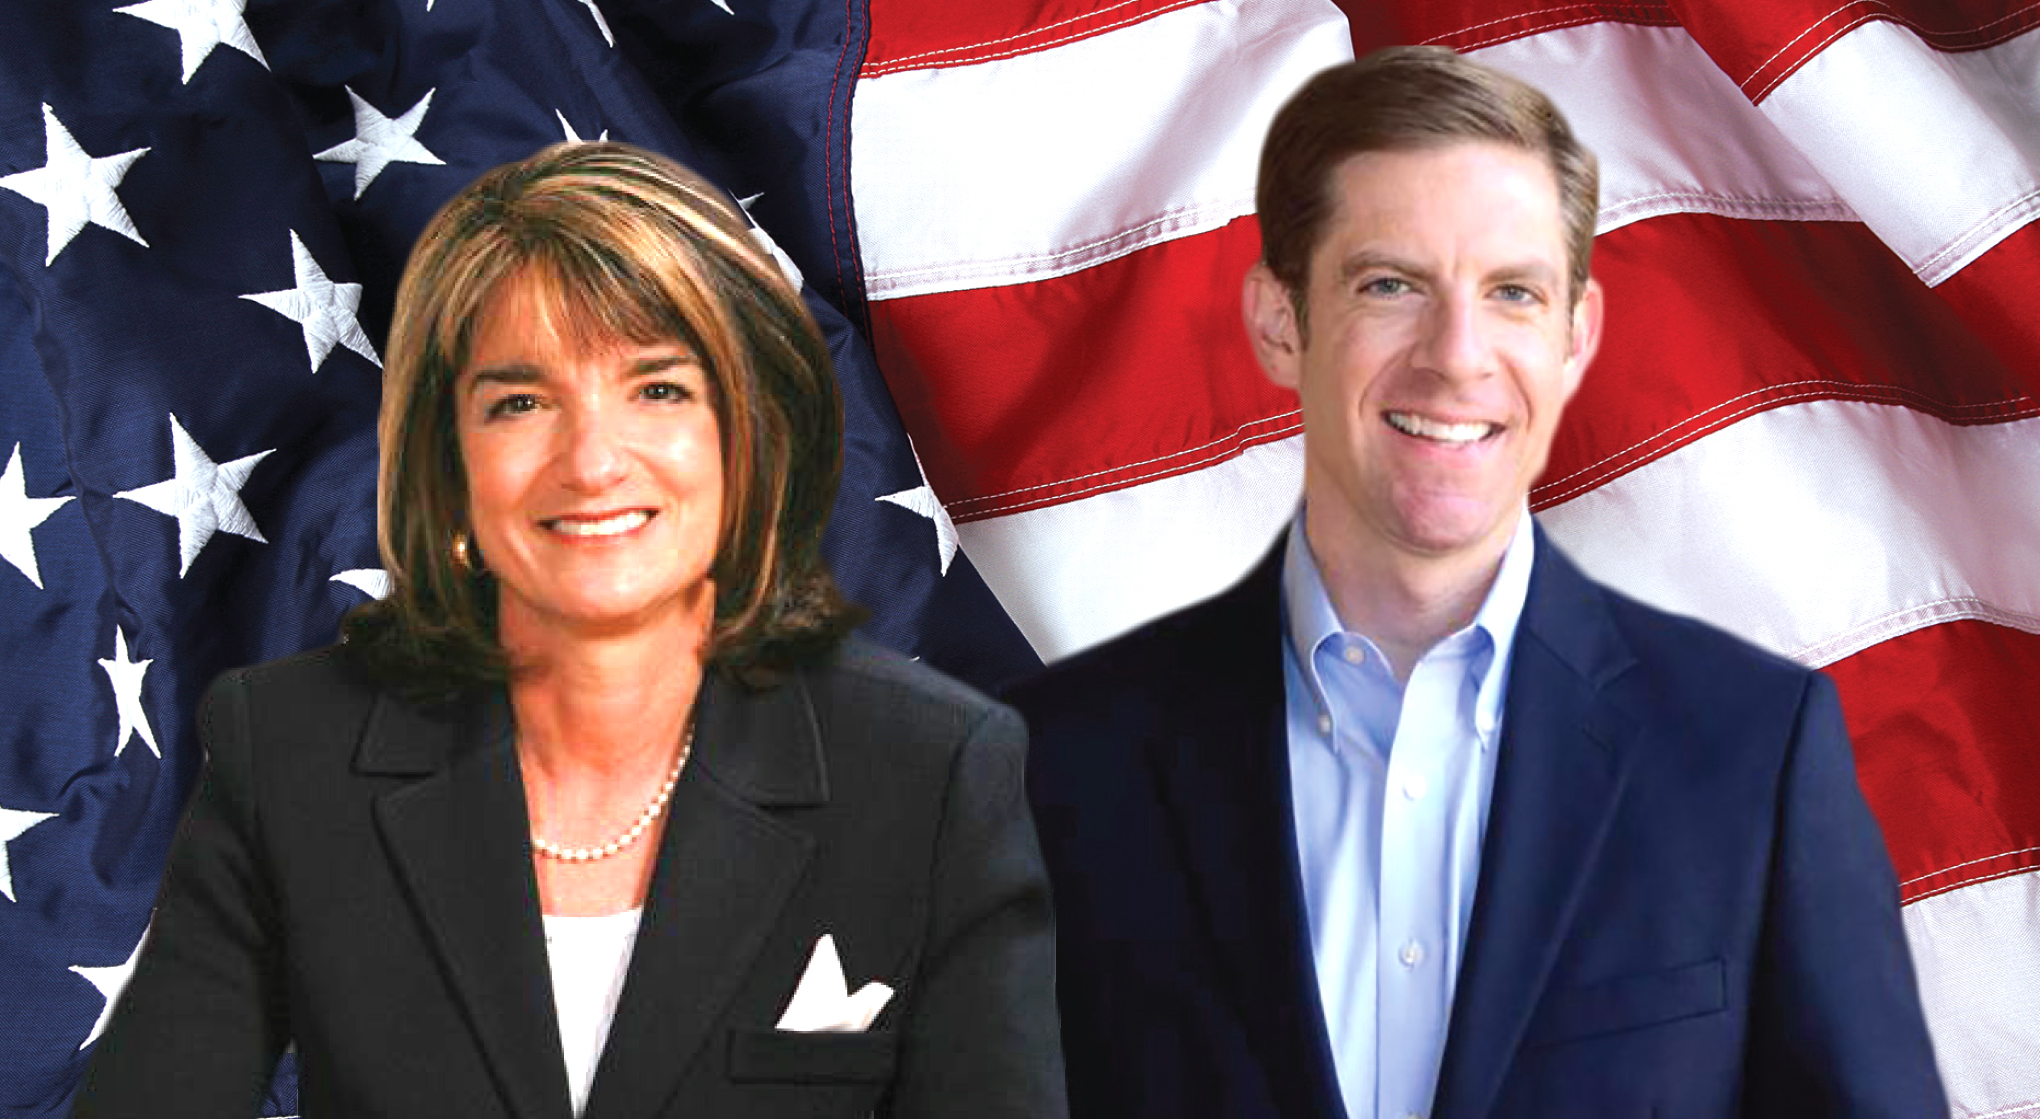 NBC 7, MiraCosta College to host District 49 candidate debate